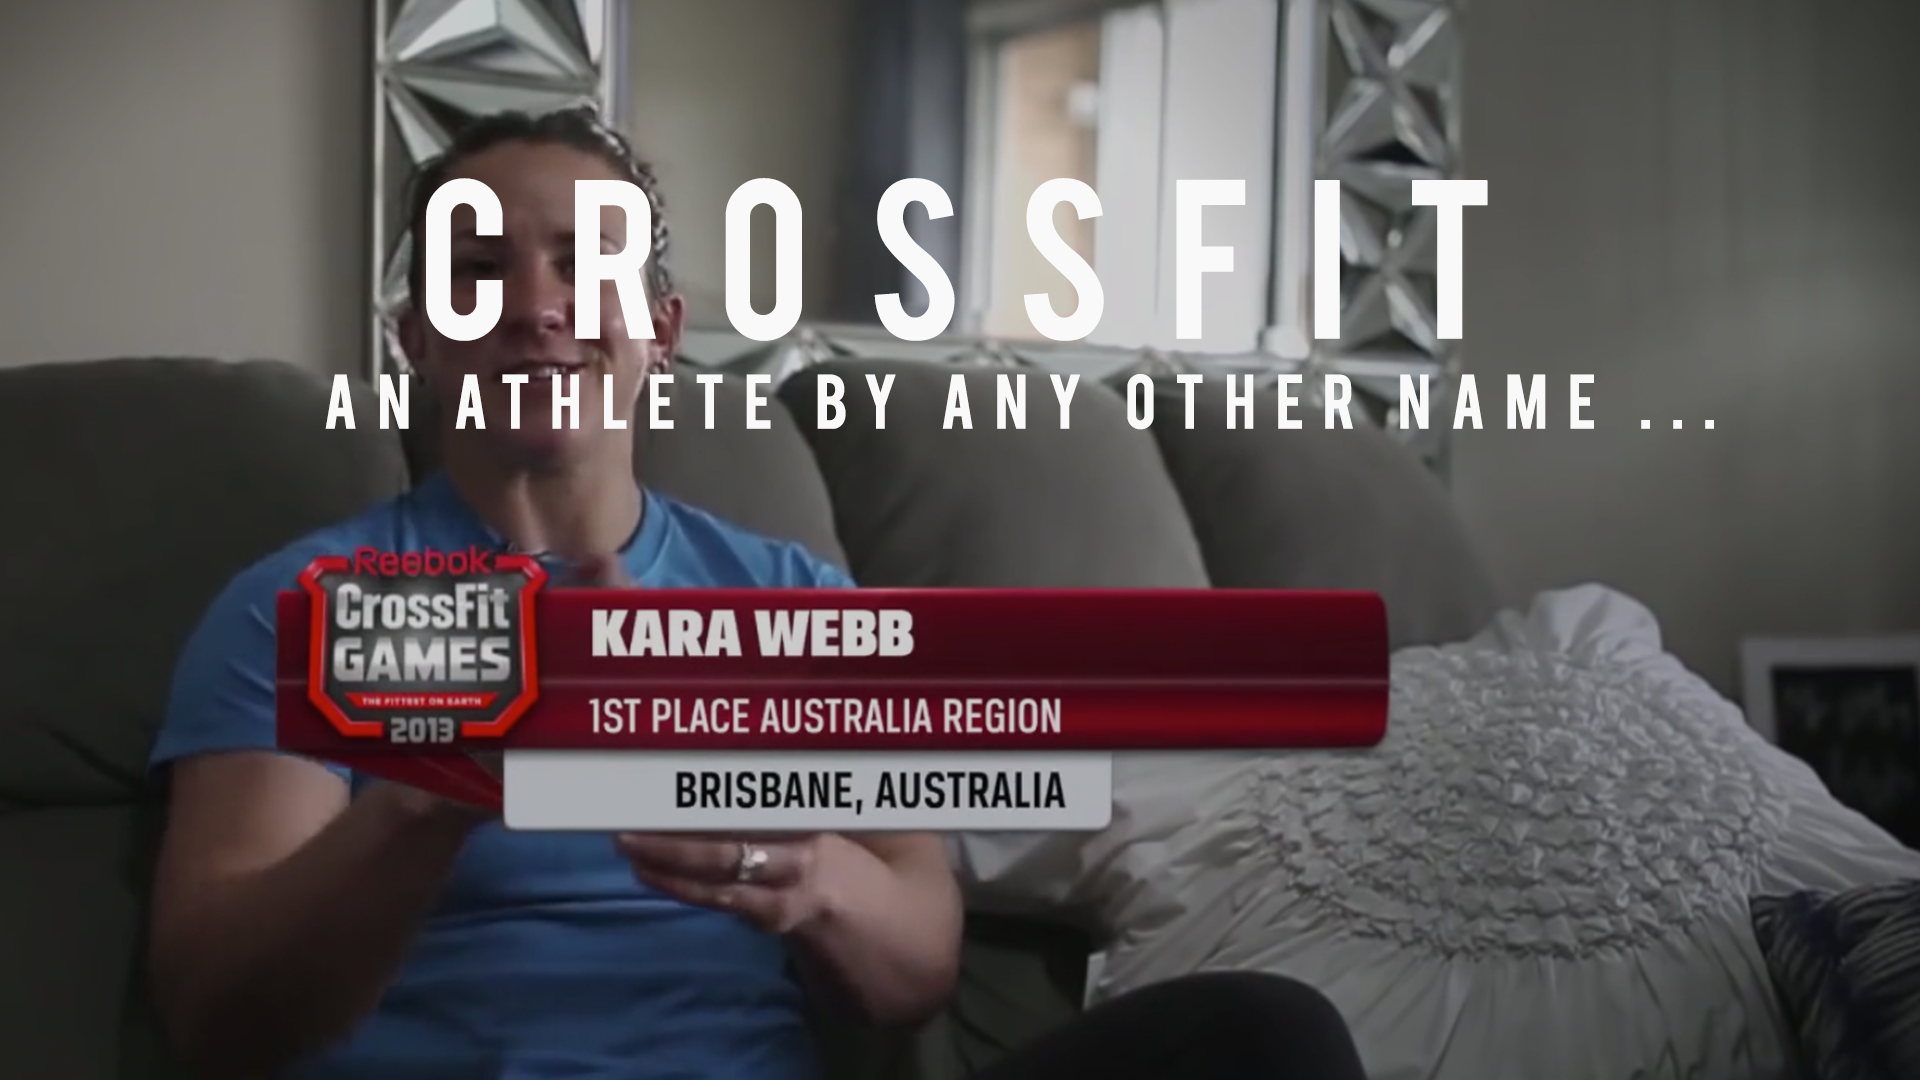 CrossFit - An Athlete By Any Other Name ... Michael McCoy Videography